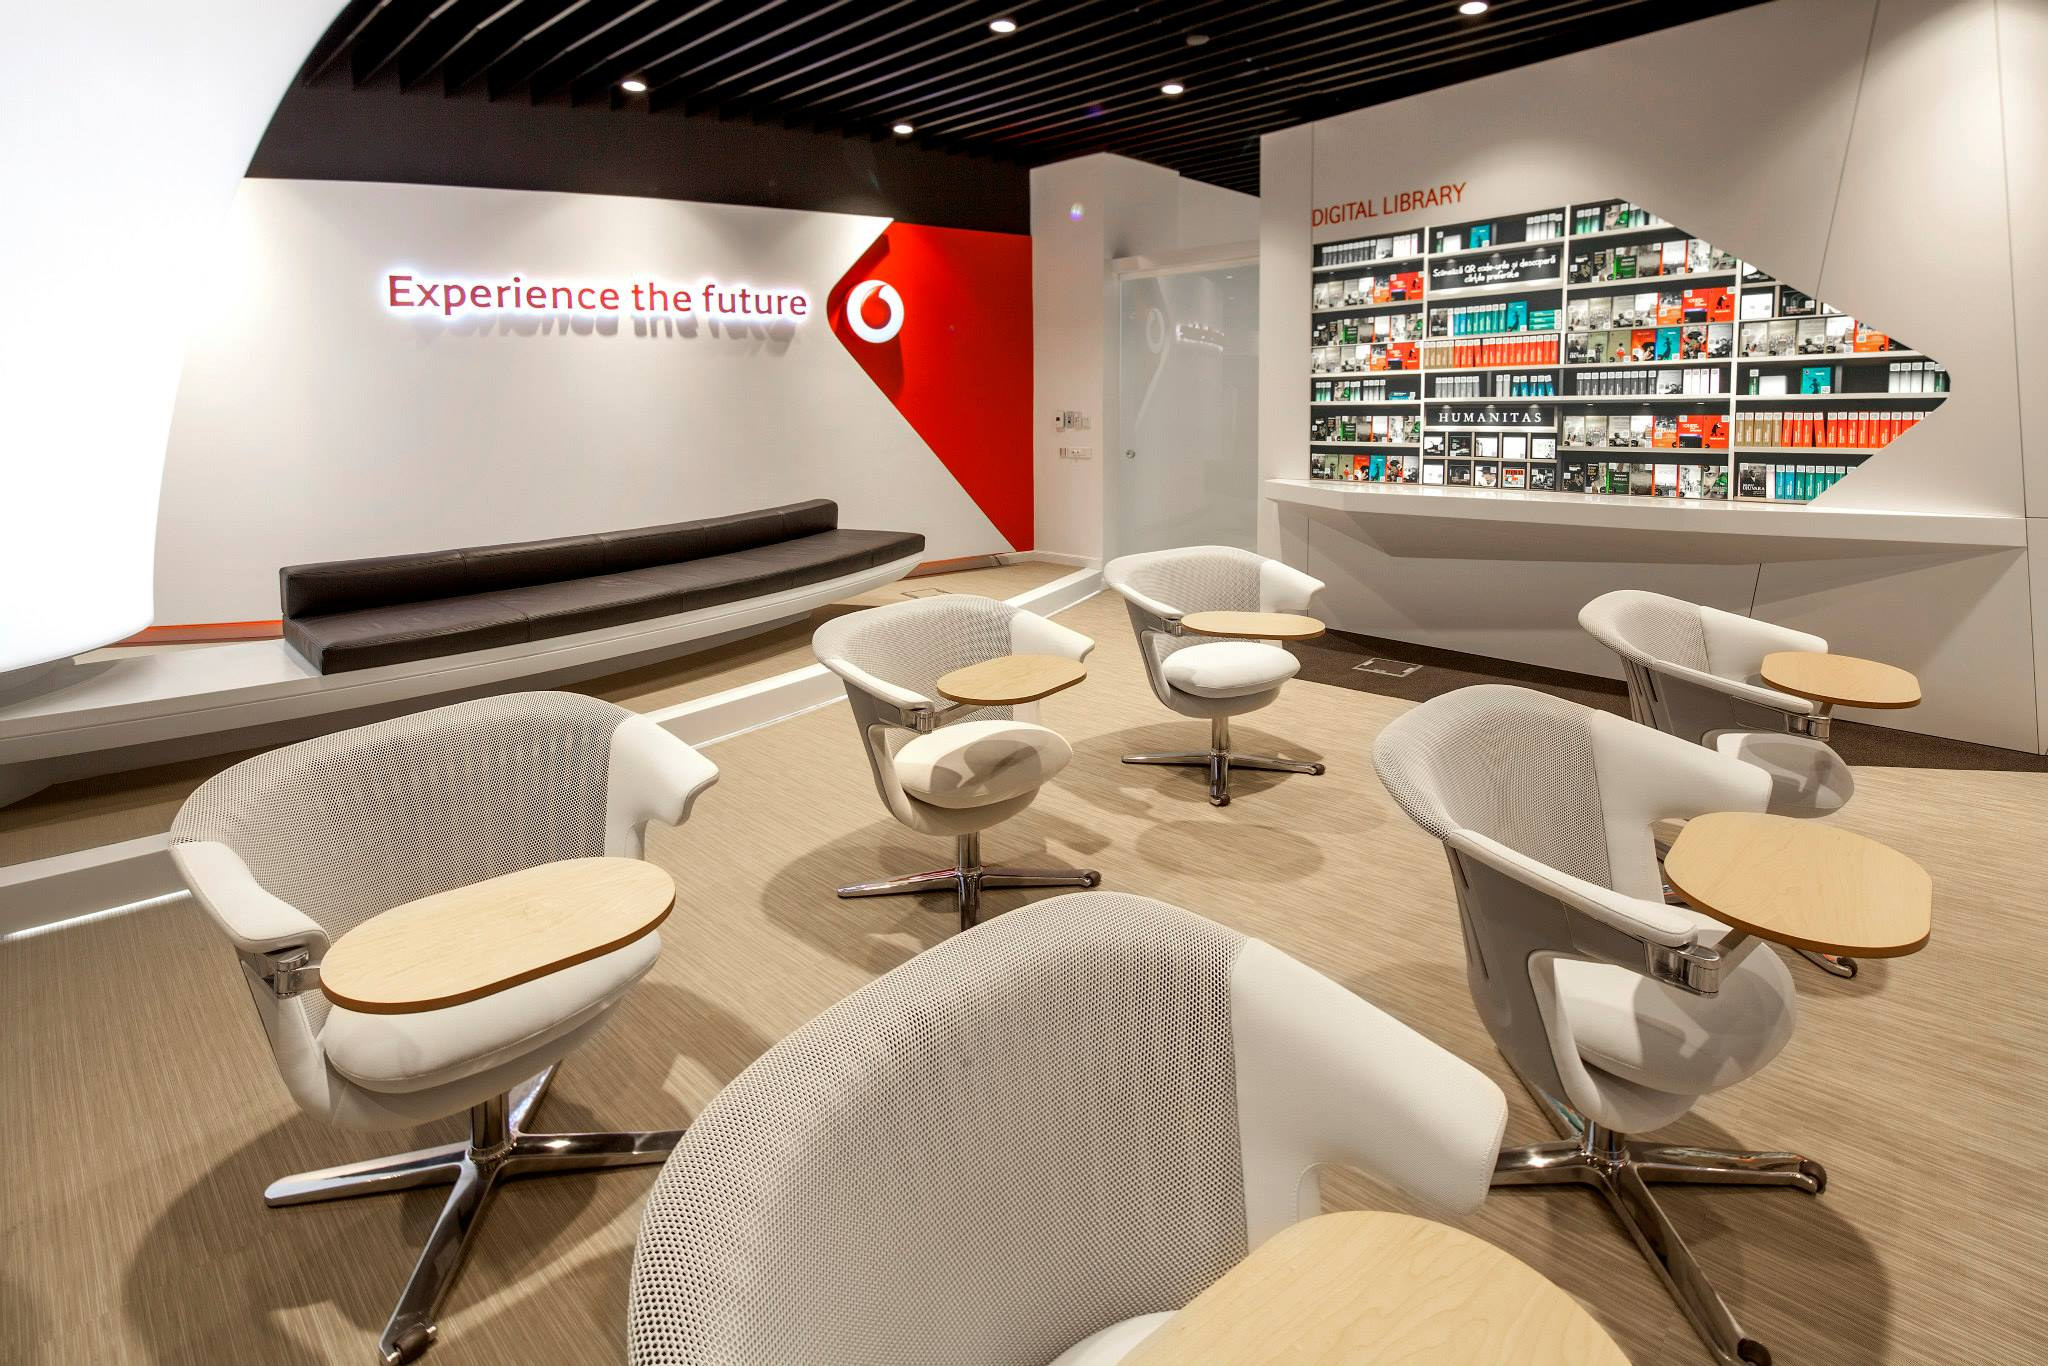 VODAFONE-Customer-Experience-Center-Pipera_Trivenus-Ama-Design_07